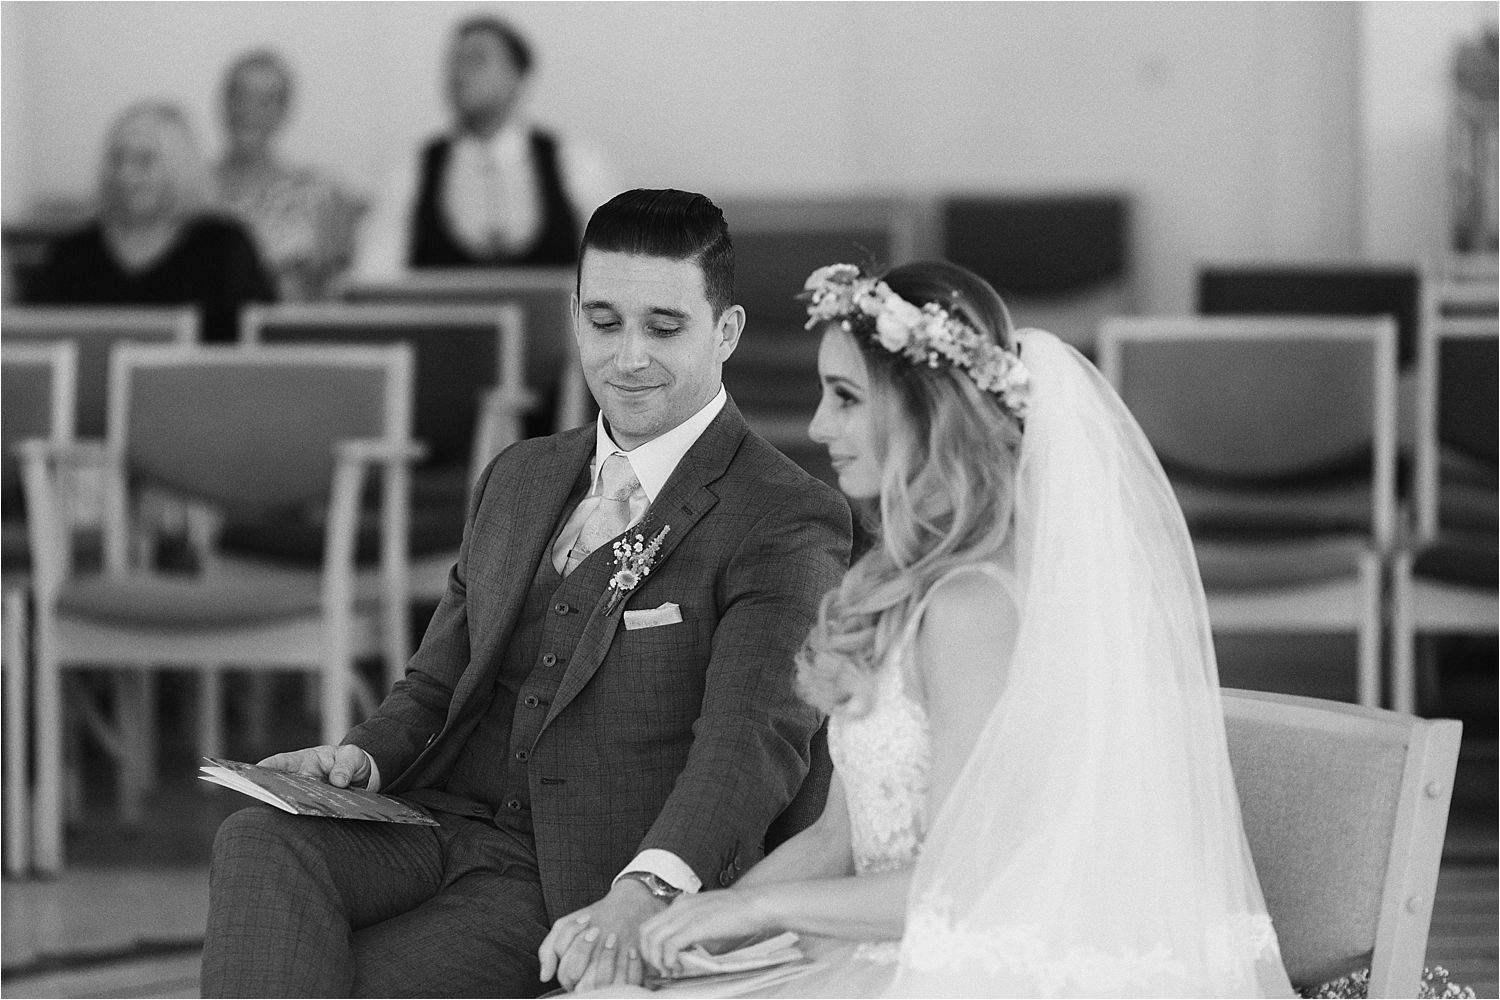 Bridegroom looks down at bride's hands during Cheshire wedding ceremony